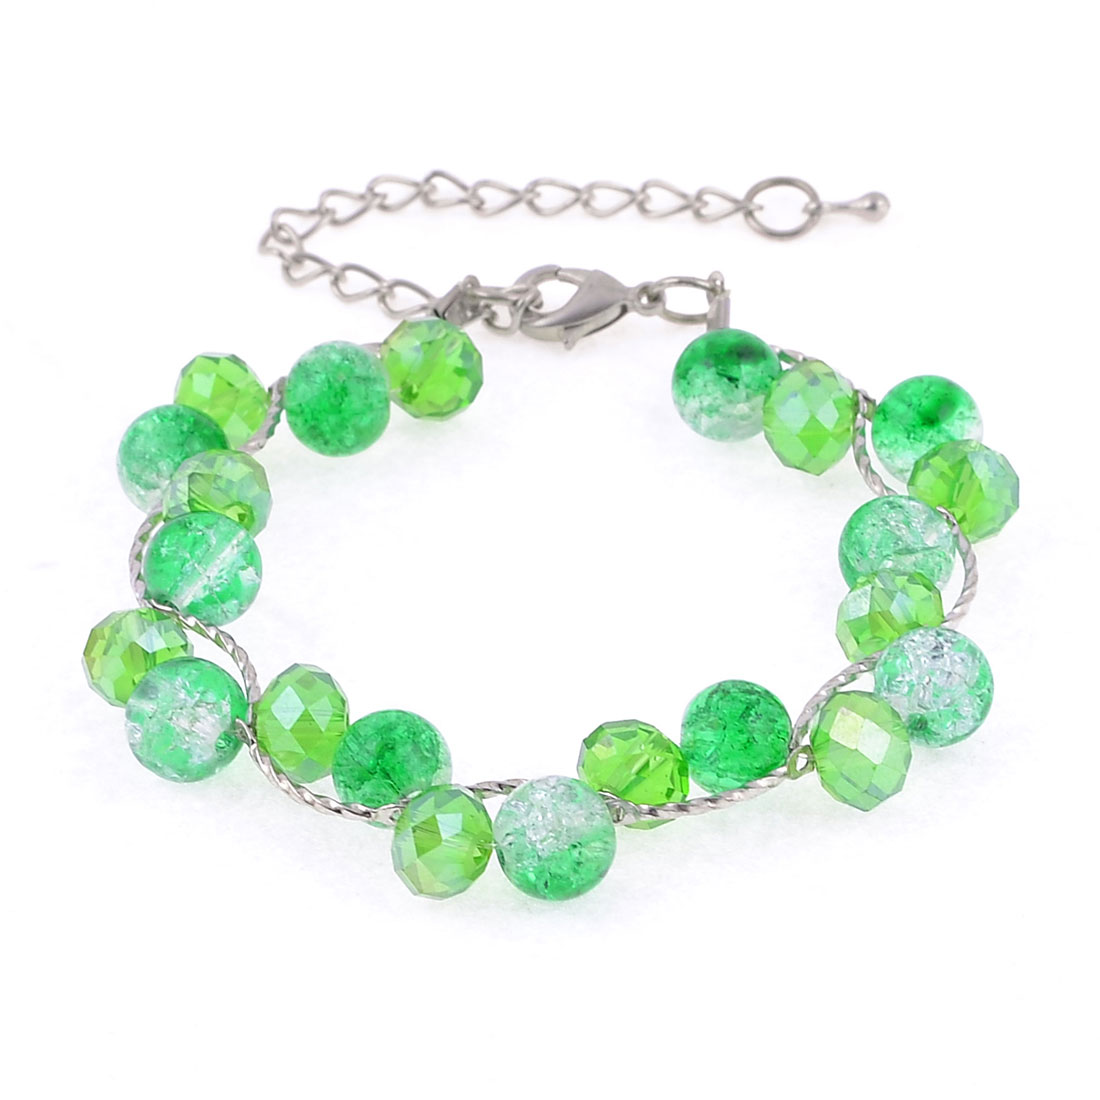 Plastic Pearls Faux Shining Crystal Green Silver Tone Chain Bracelet